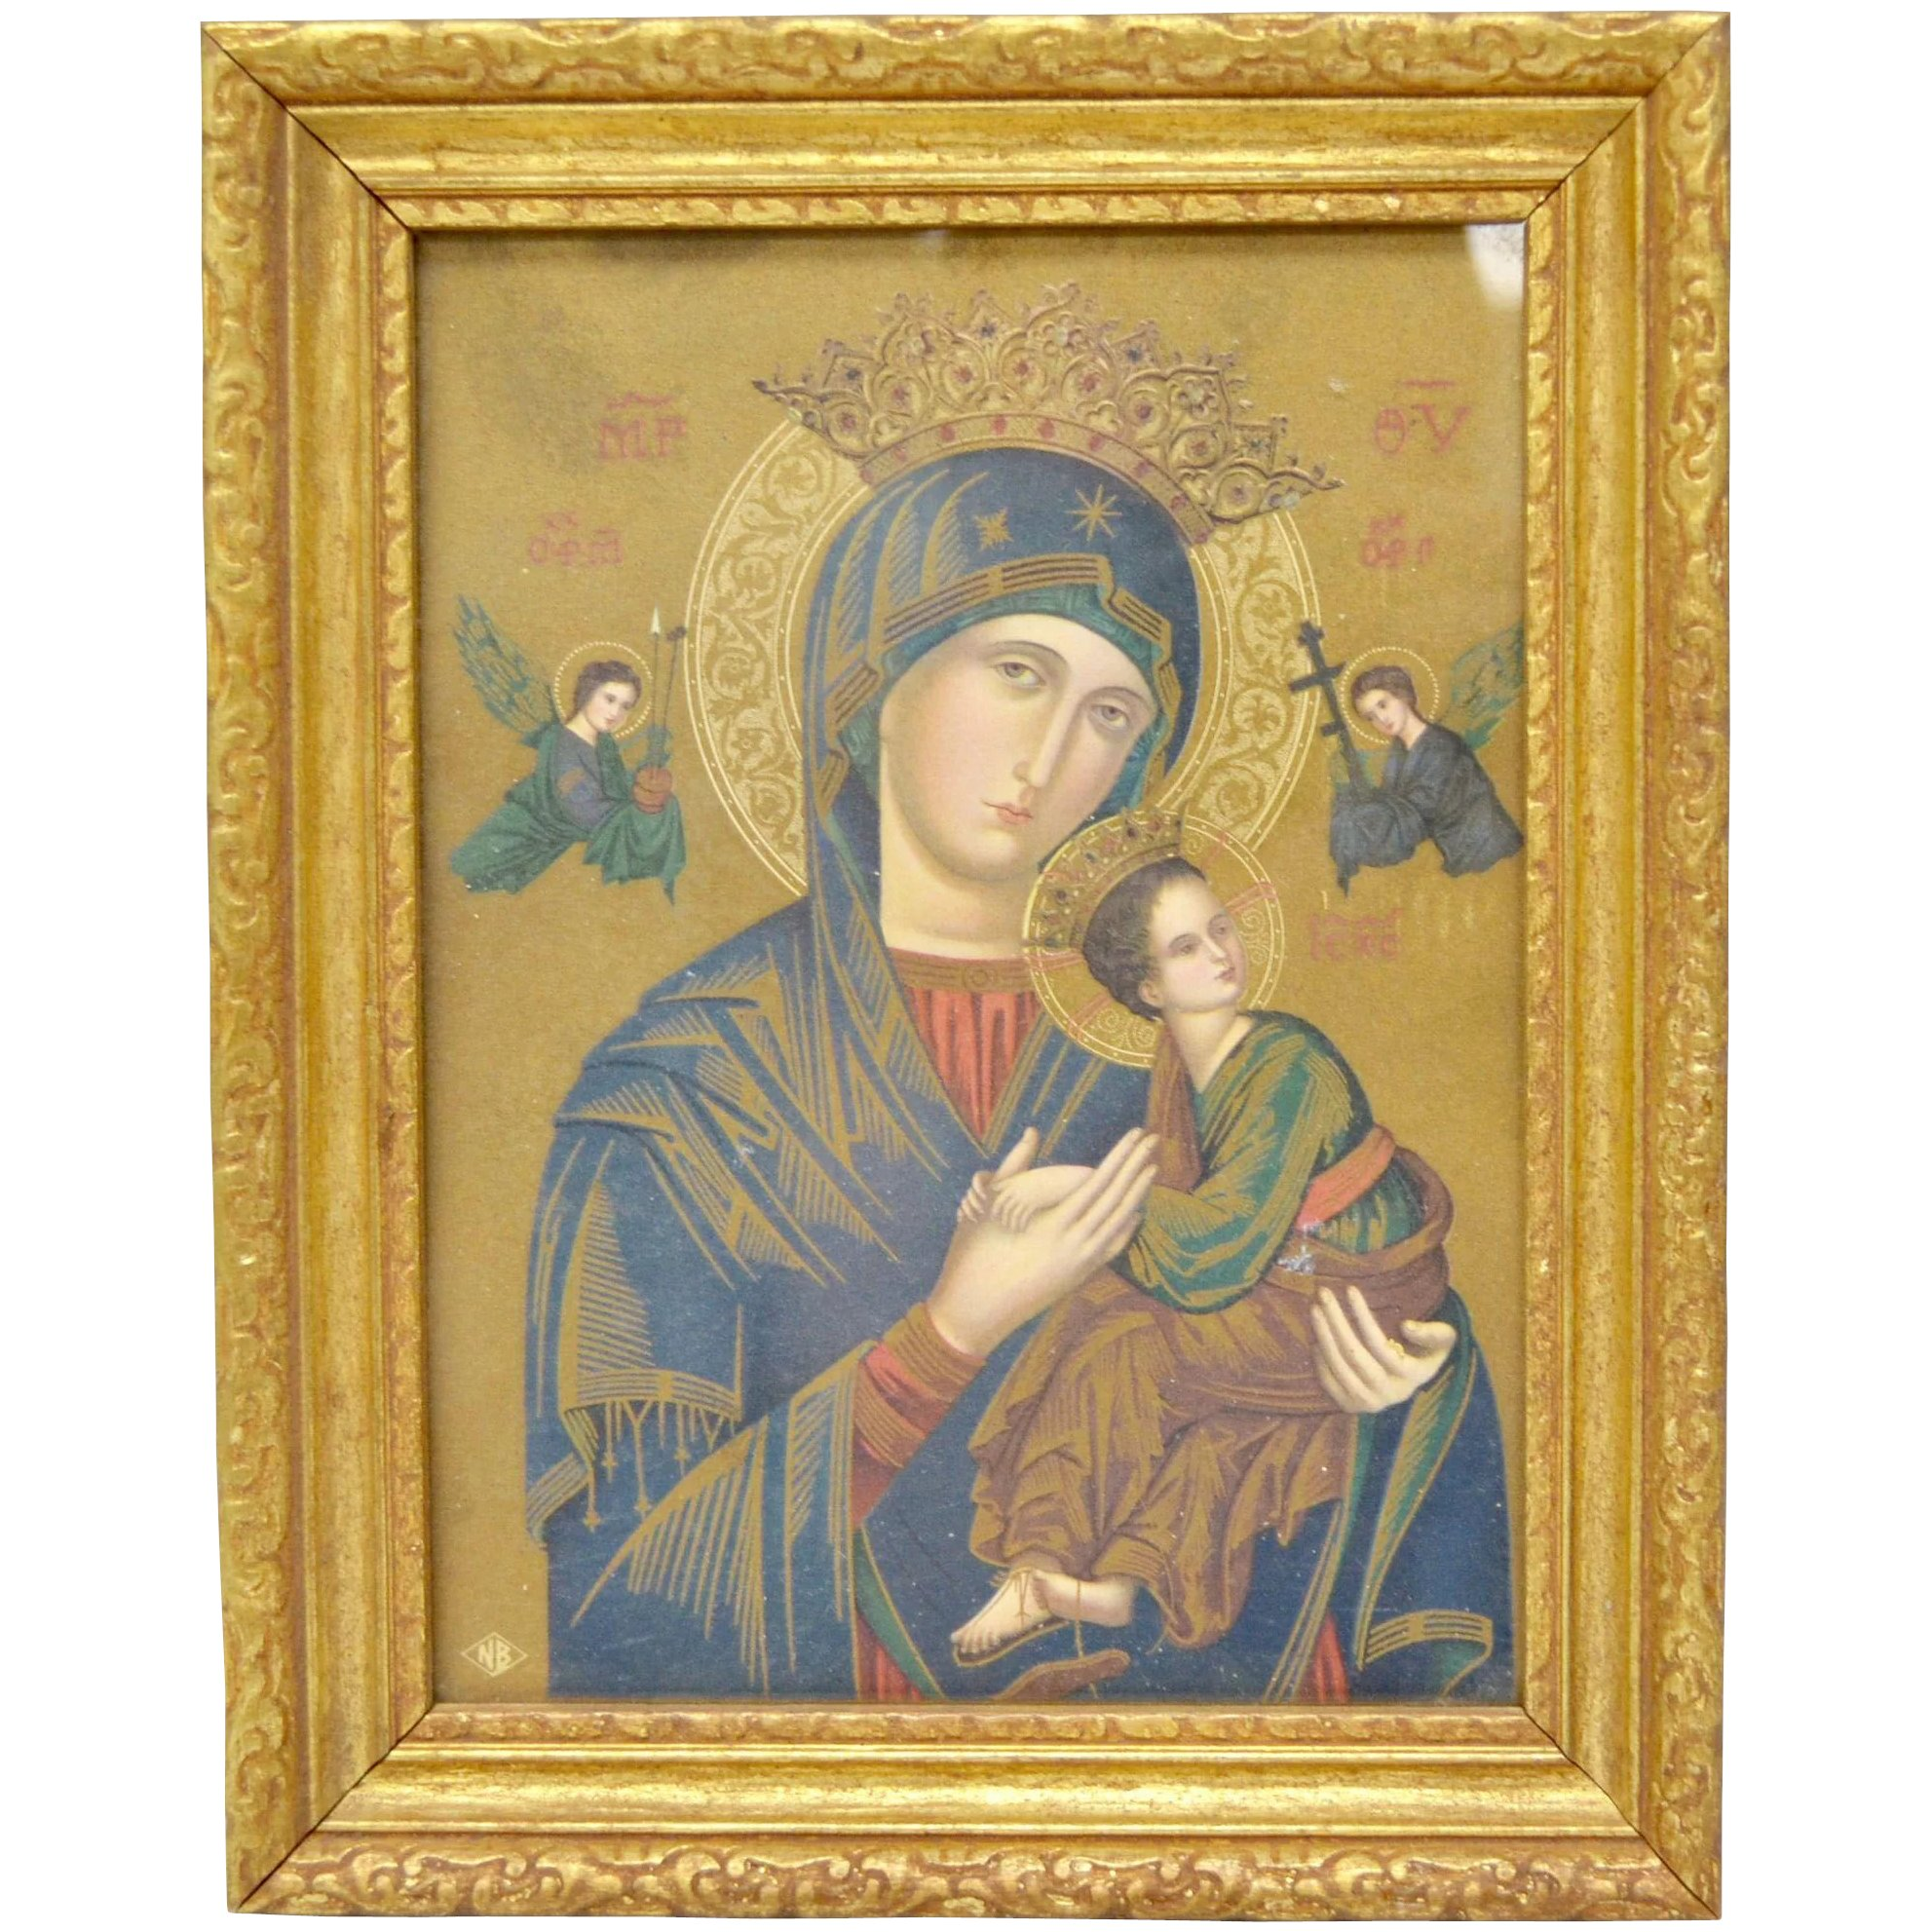 Our Mother/Lady of Perpetual Help Virgin Mary and Child Framed Art ...